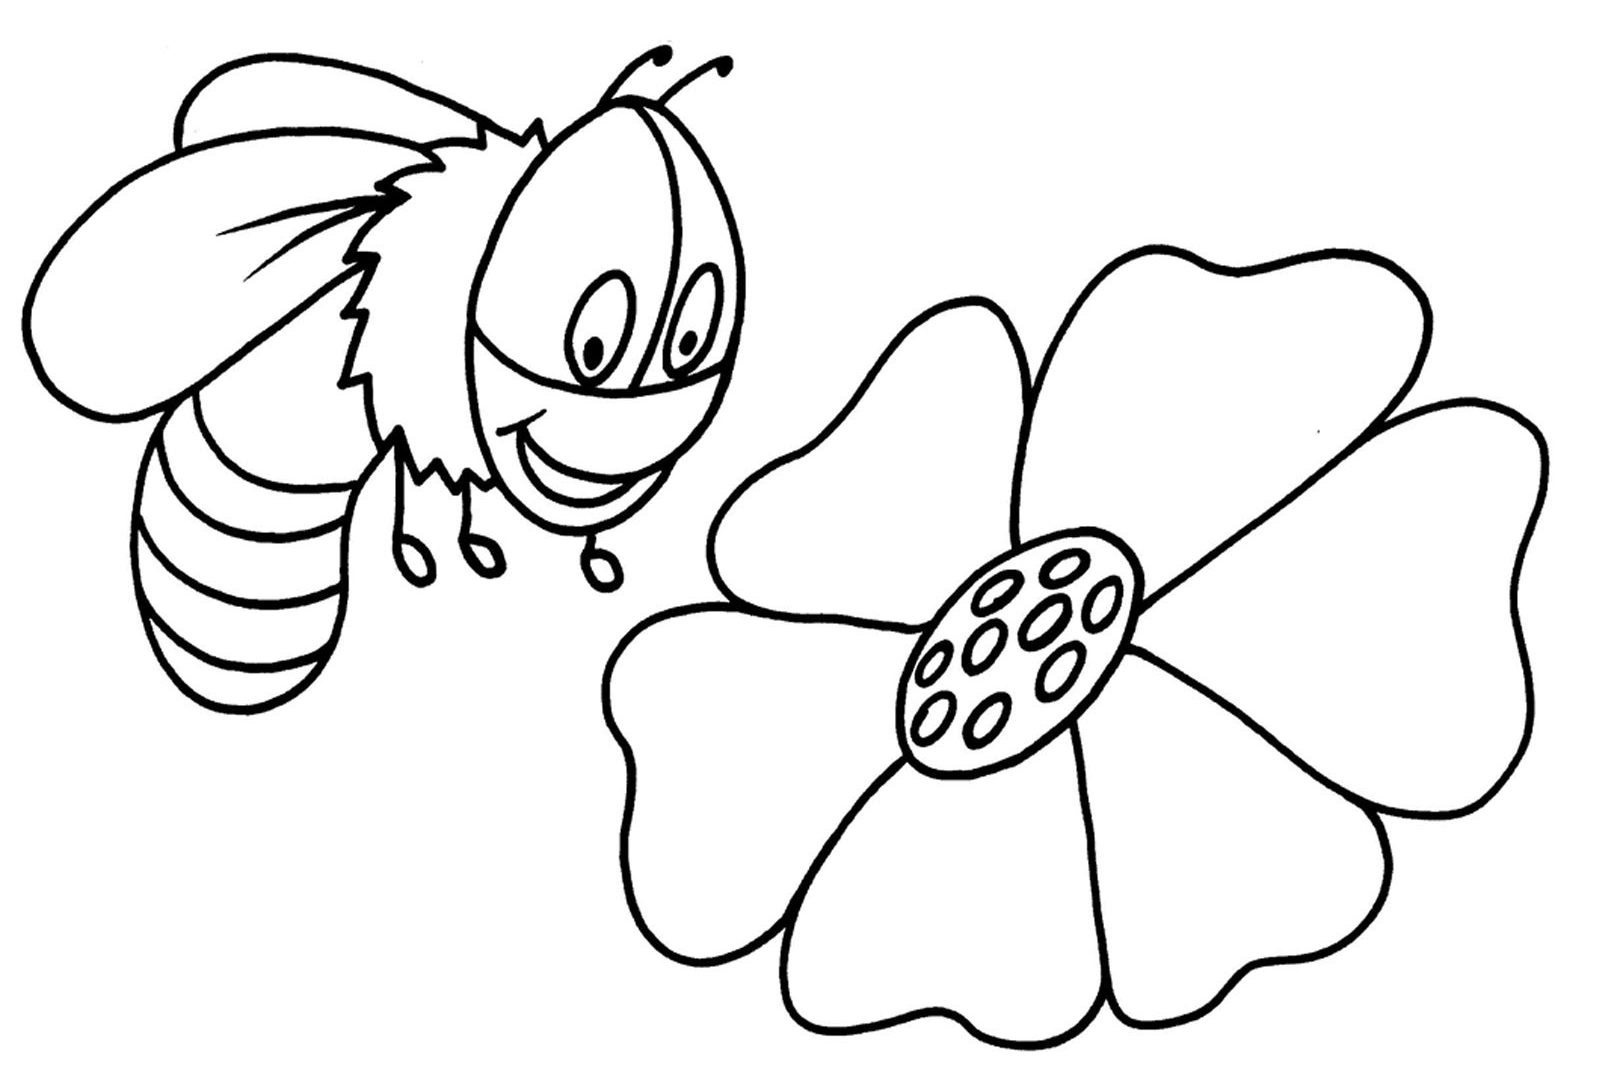 1600x1080 Drawn Bumble Bee Movie Page Pencil Printable Coloring Pages Free